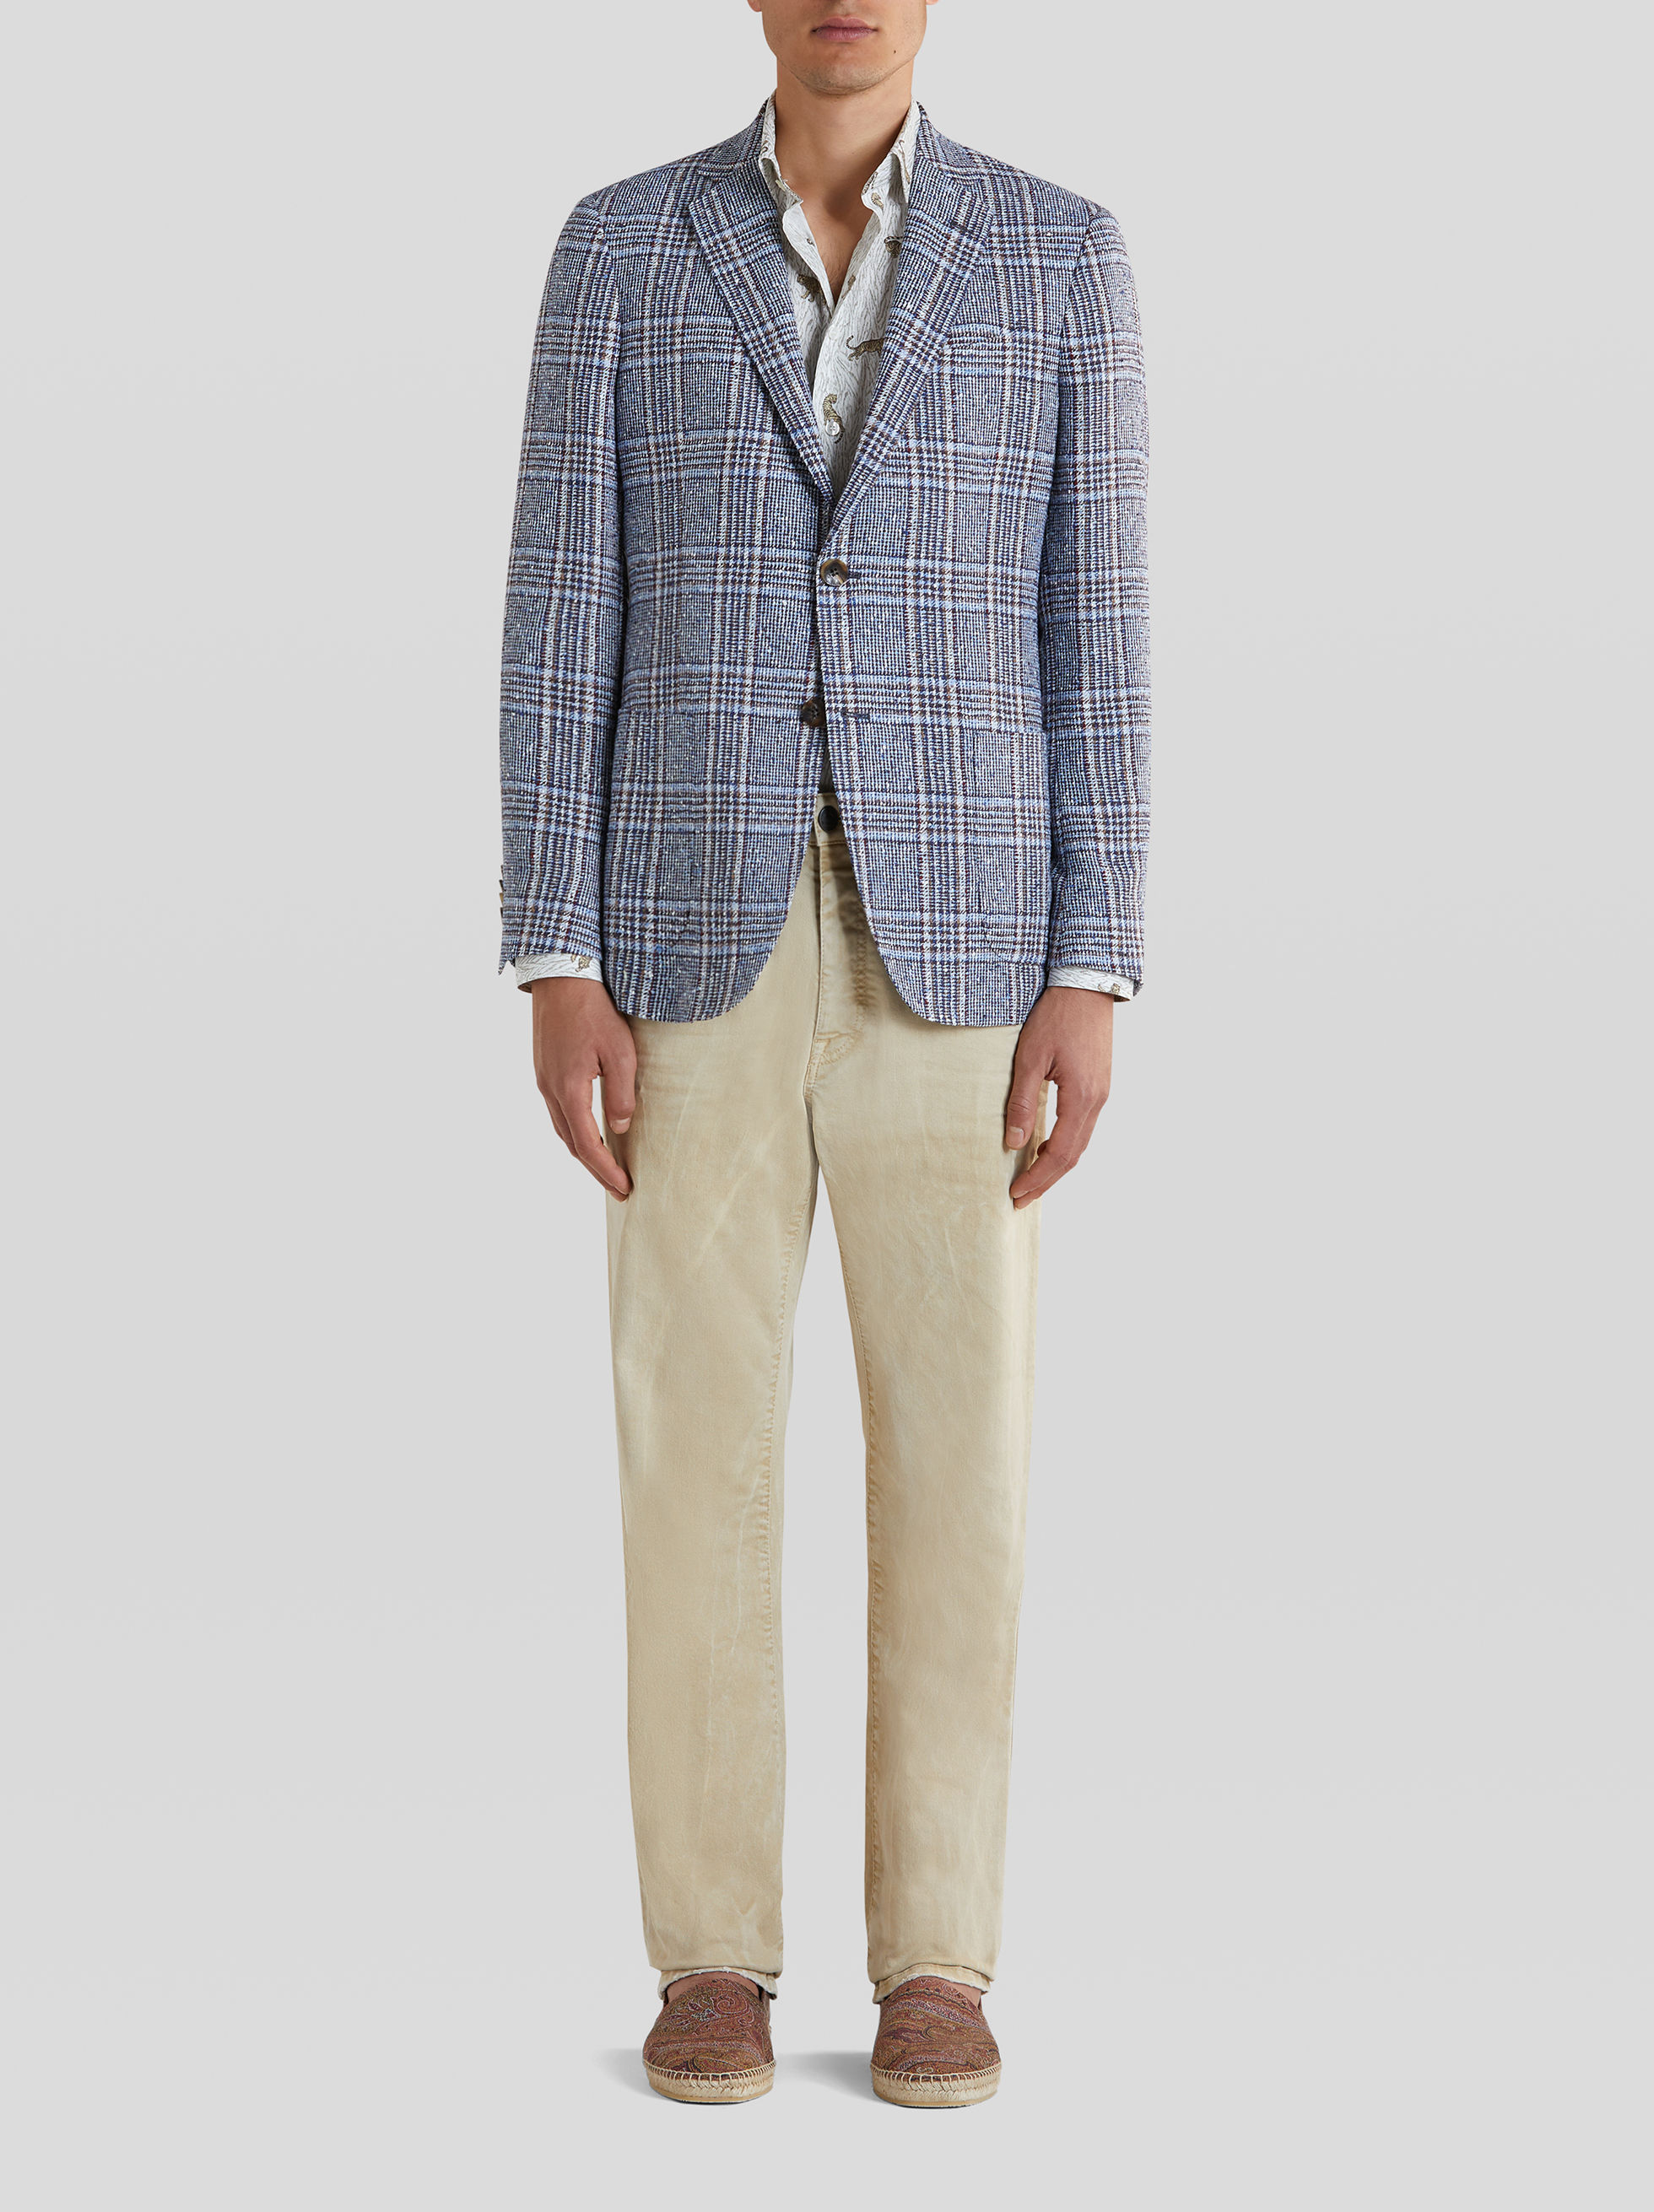 TAILORED PRINCE OF WALES CHECK JACKET